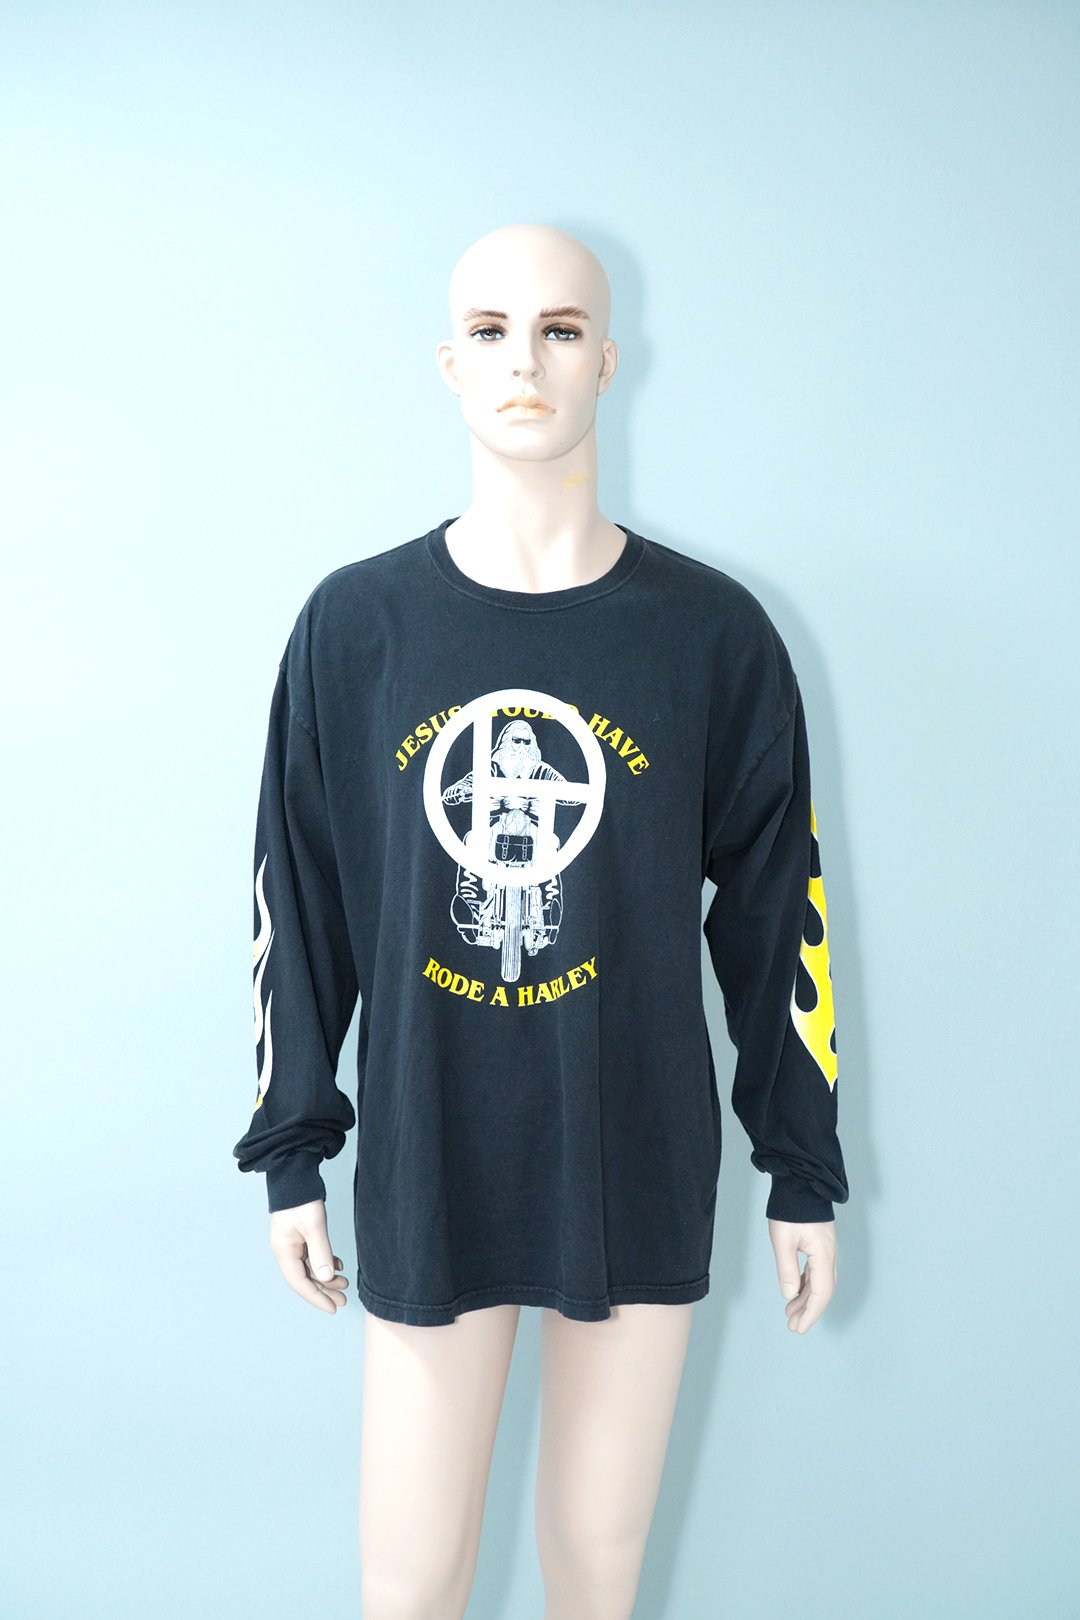 Vintage A Christian Motorcycle Club L/S T-Shirt